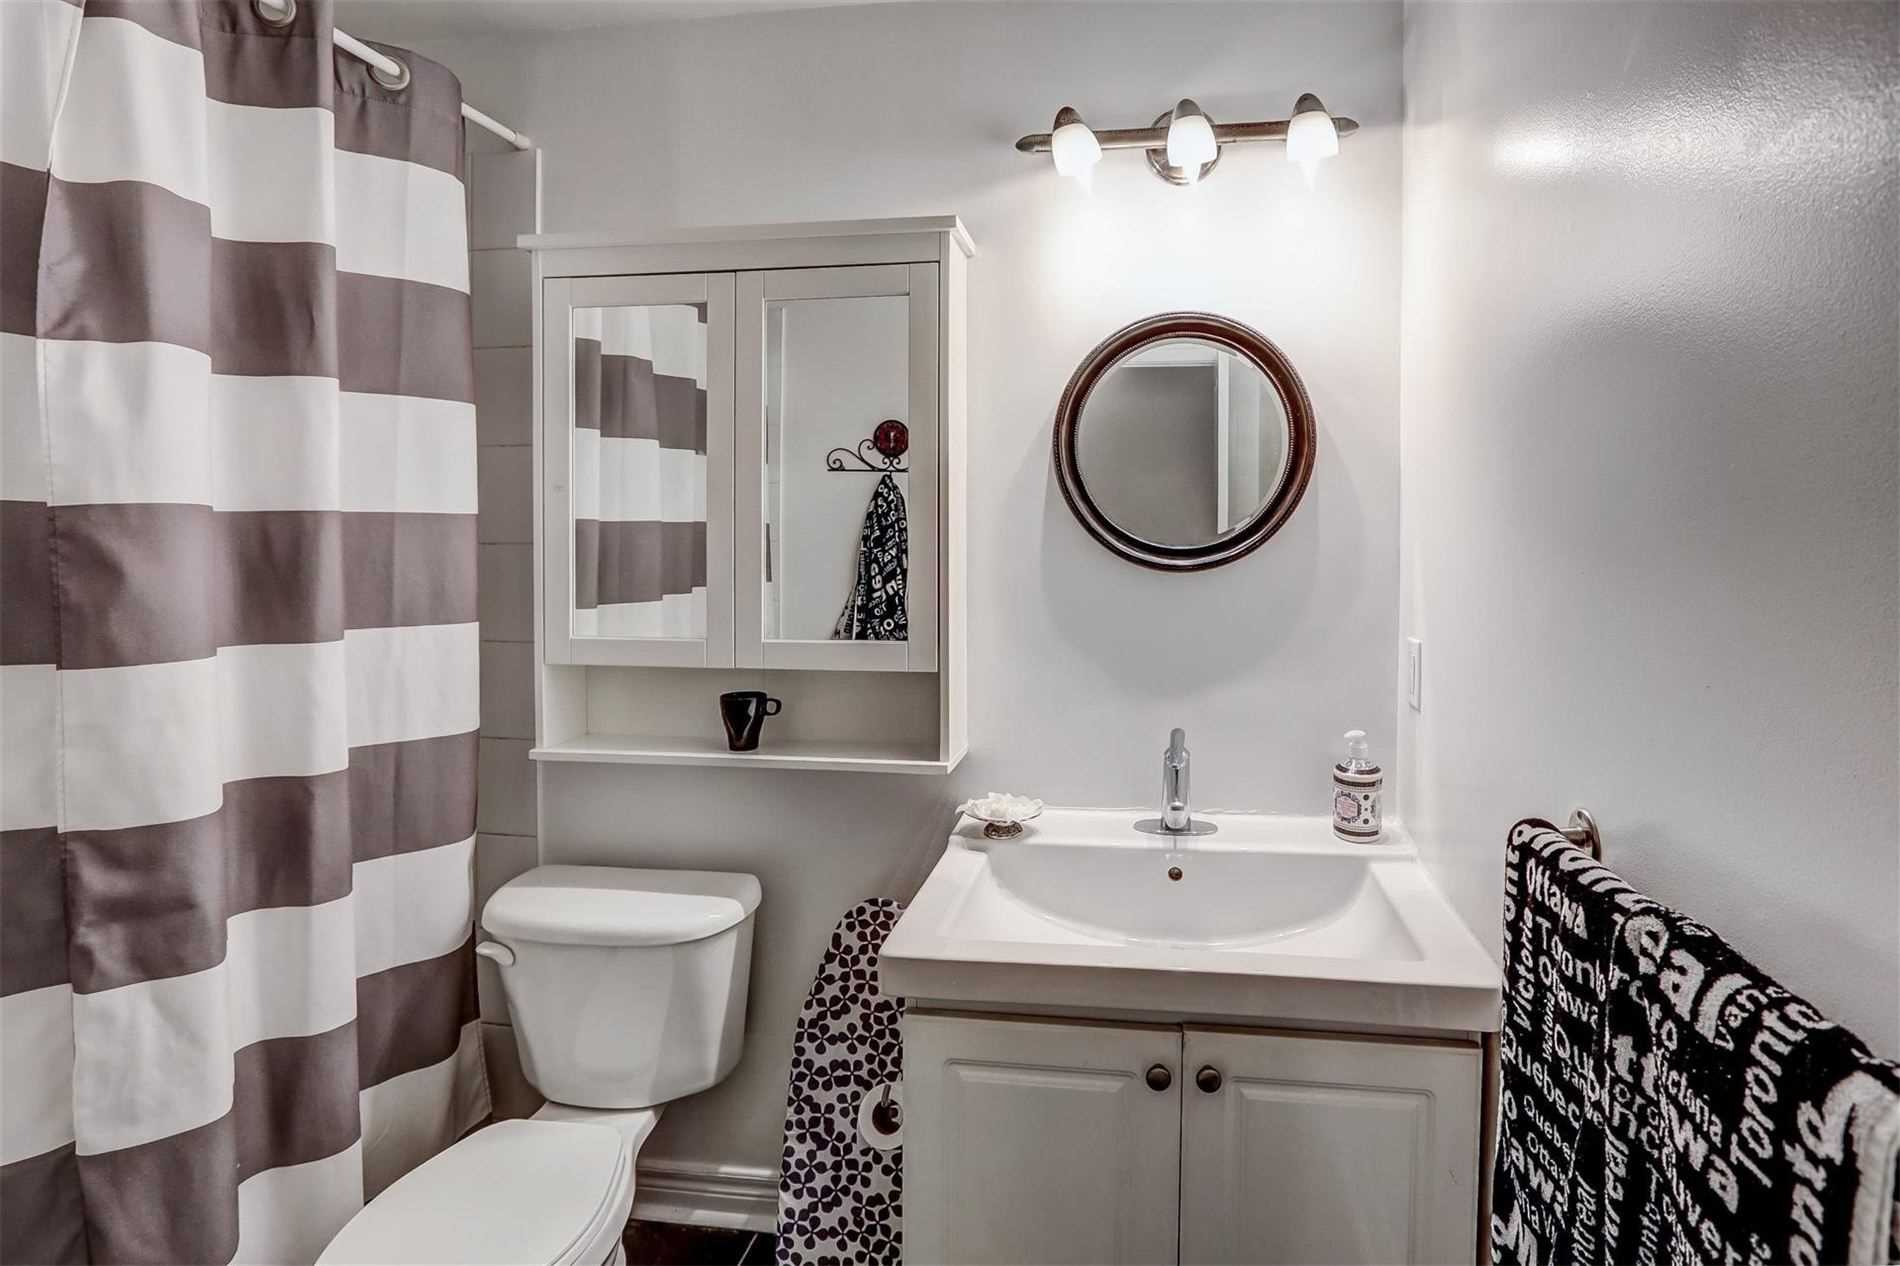 Detached house For Lease In Toronto - 94 Royal York Rd, Toronto, Ontario, Canada M8V2T8 , 1 Bedroom Bedrooms, ,1 BathroomBathrooms,Detached,For Lease,Royal York